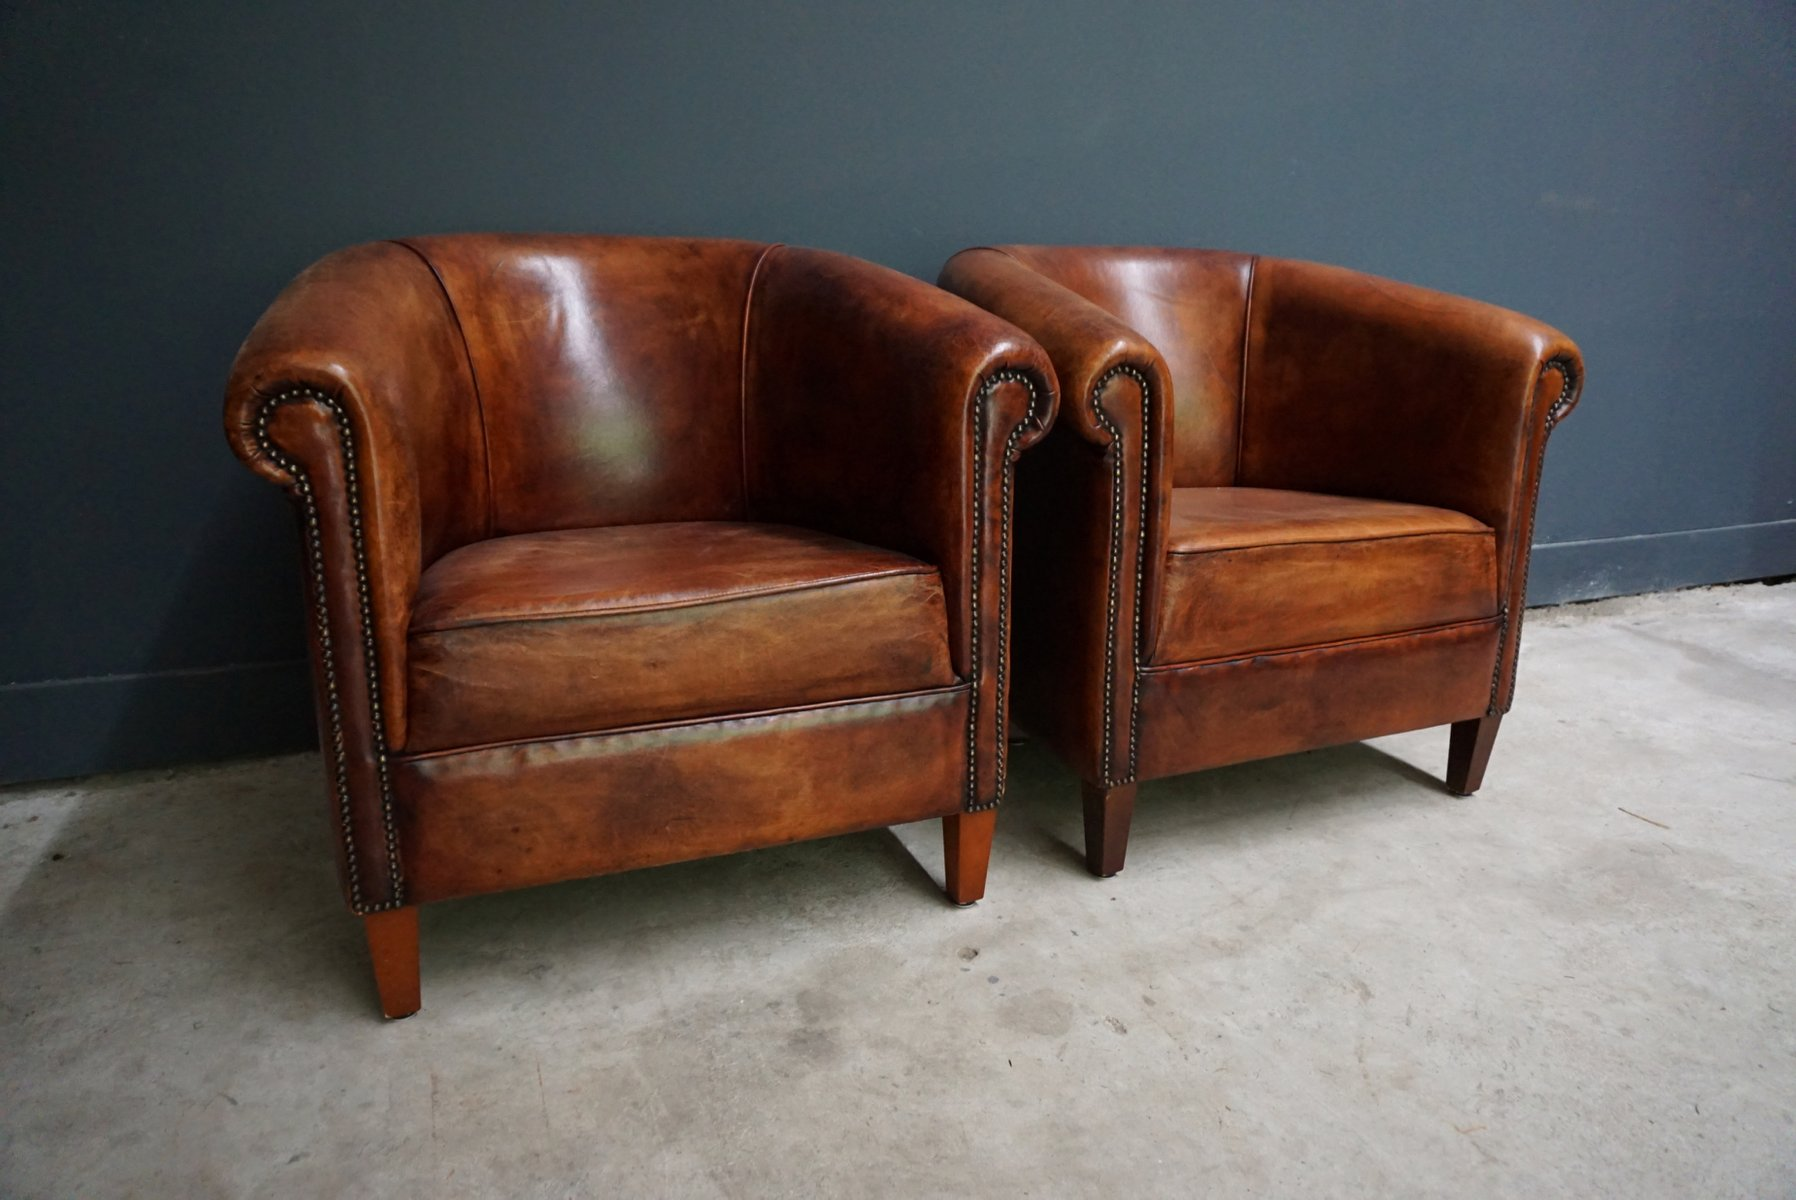 Vintage Club Chairs Vintage Dutch Cognac Leather Club Chairs Set Of 2 For